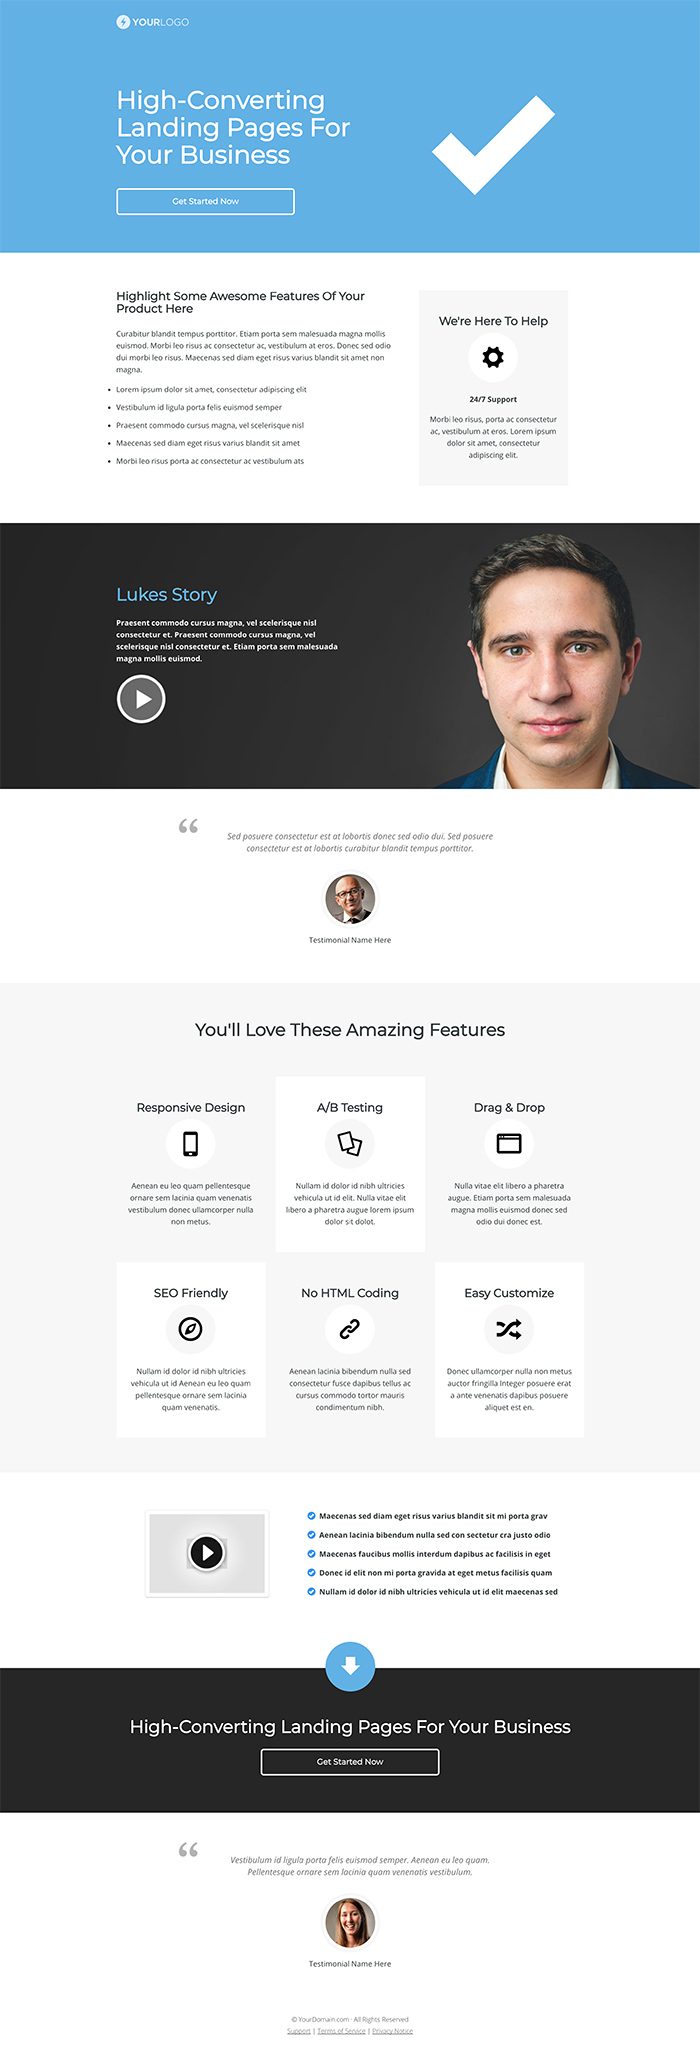 OptimizePress December Template Roundup | Right Landing Page